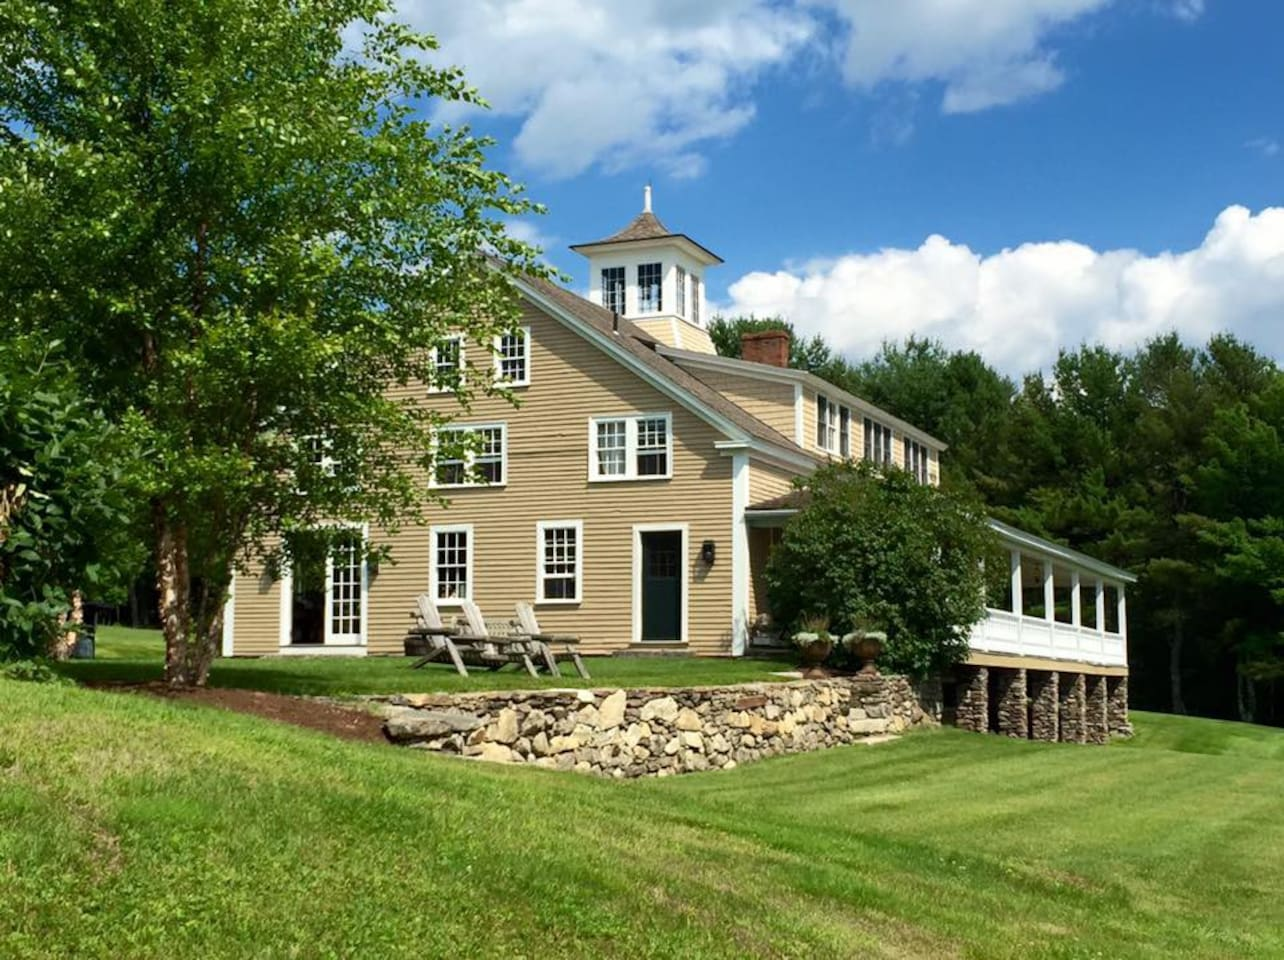 parker mountain lodge houses for rent in strafford new hampshire united states: heater table aaad